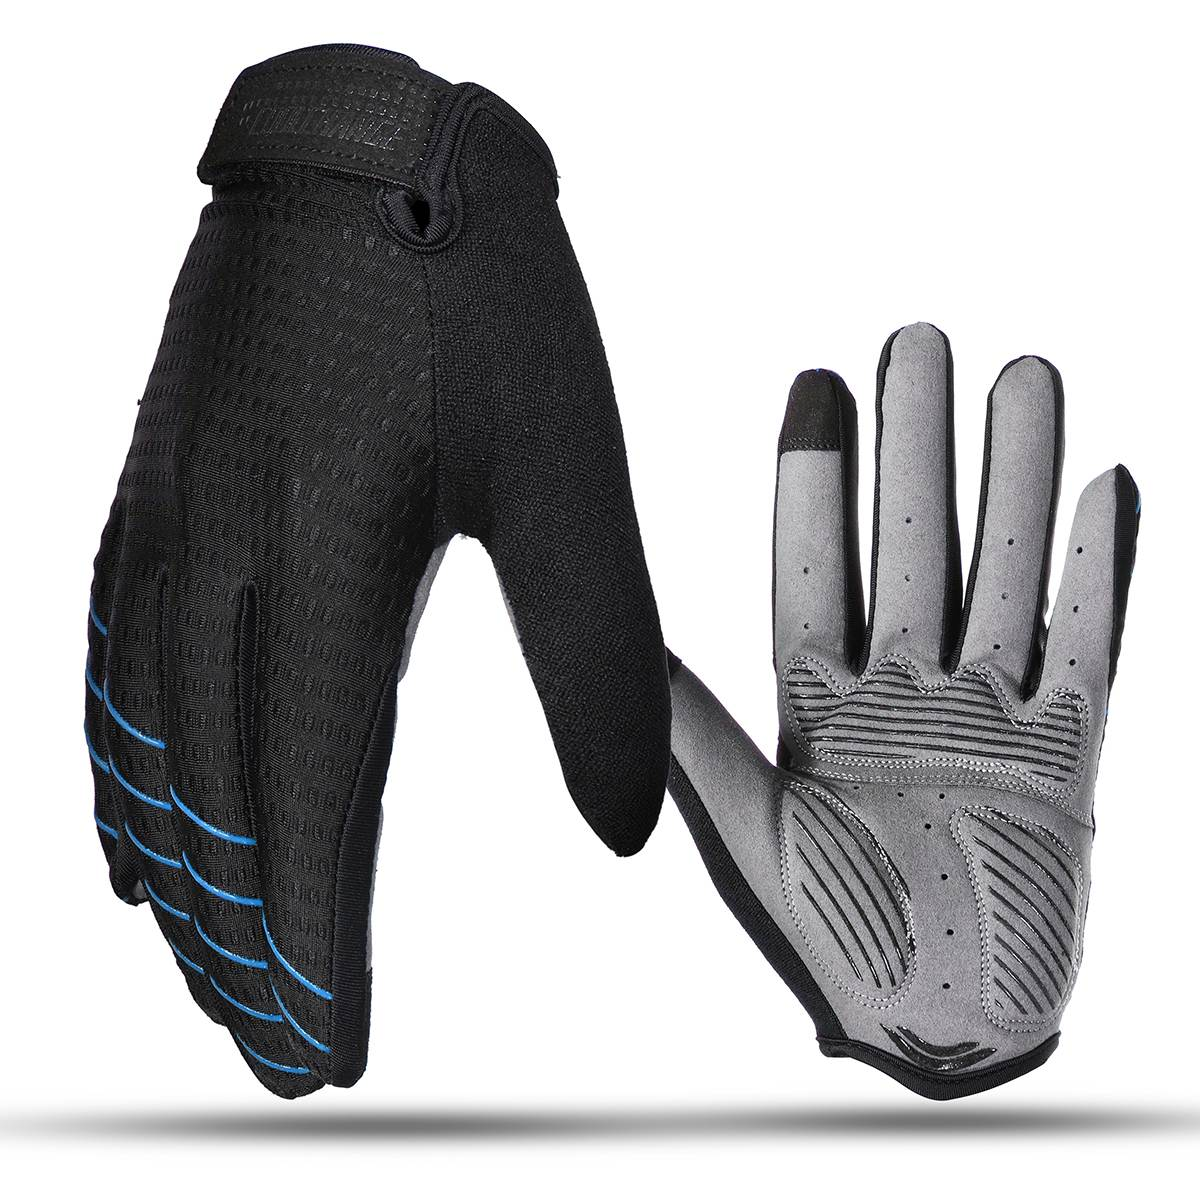 купить Black Blue Red Winter Warm Cycling Gloves Touch Screen Racing Motorcycle Bike Women Men for skiing outdoor design дешево